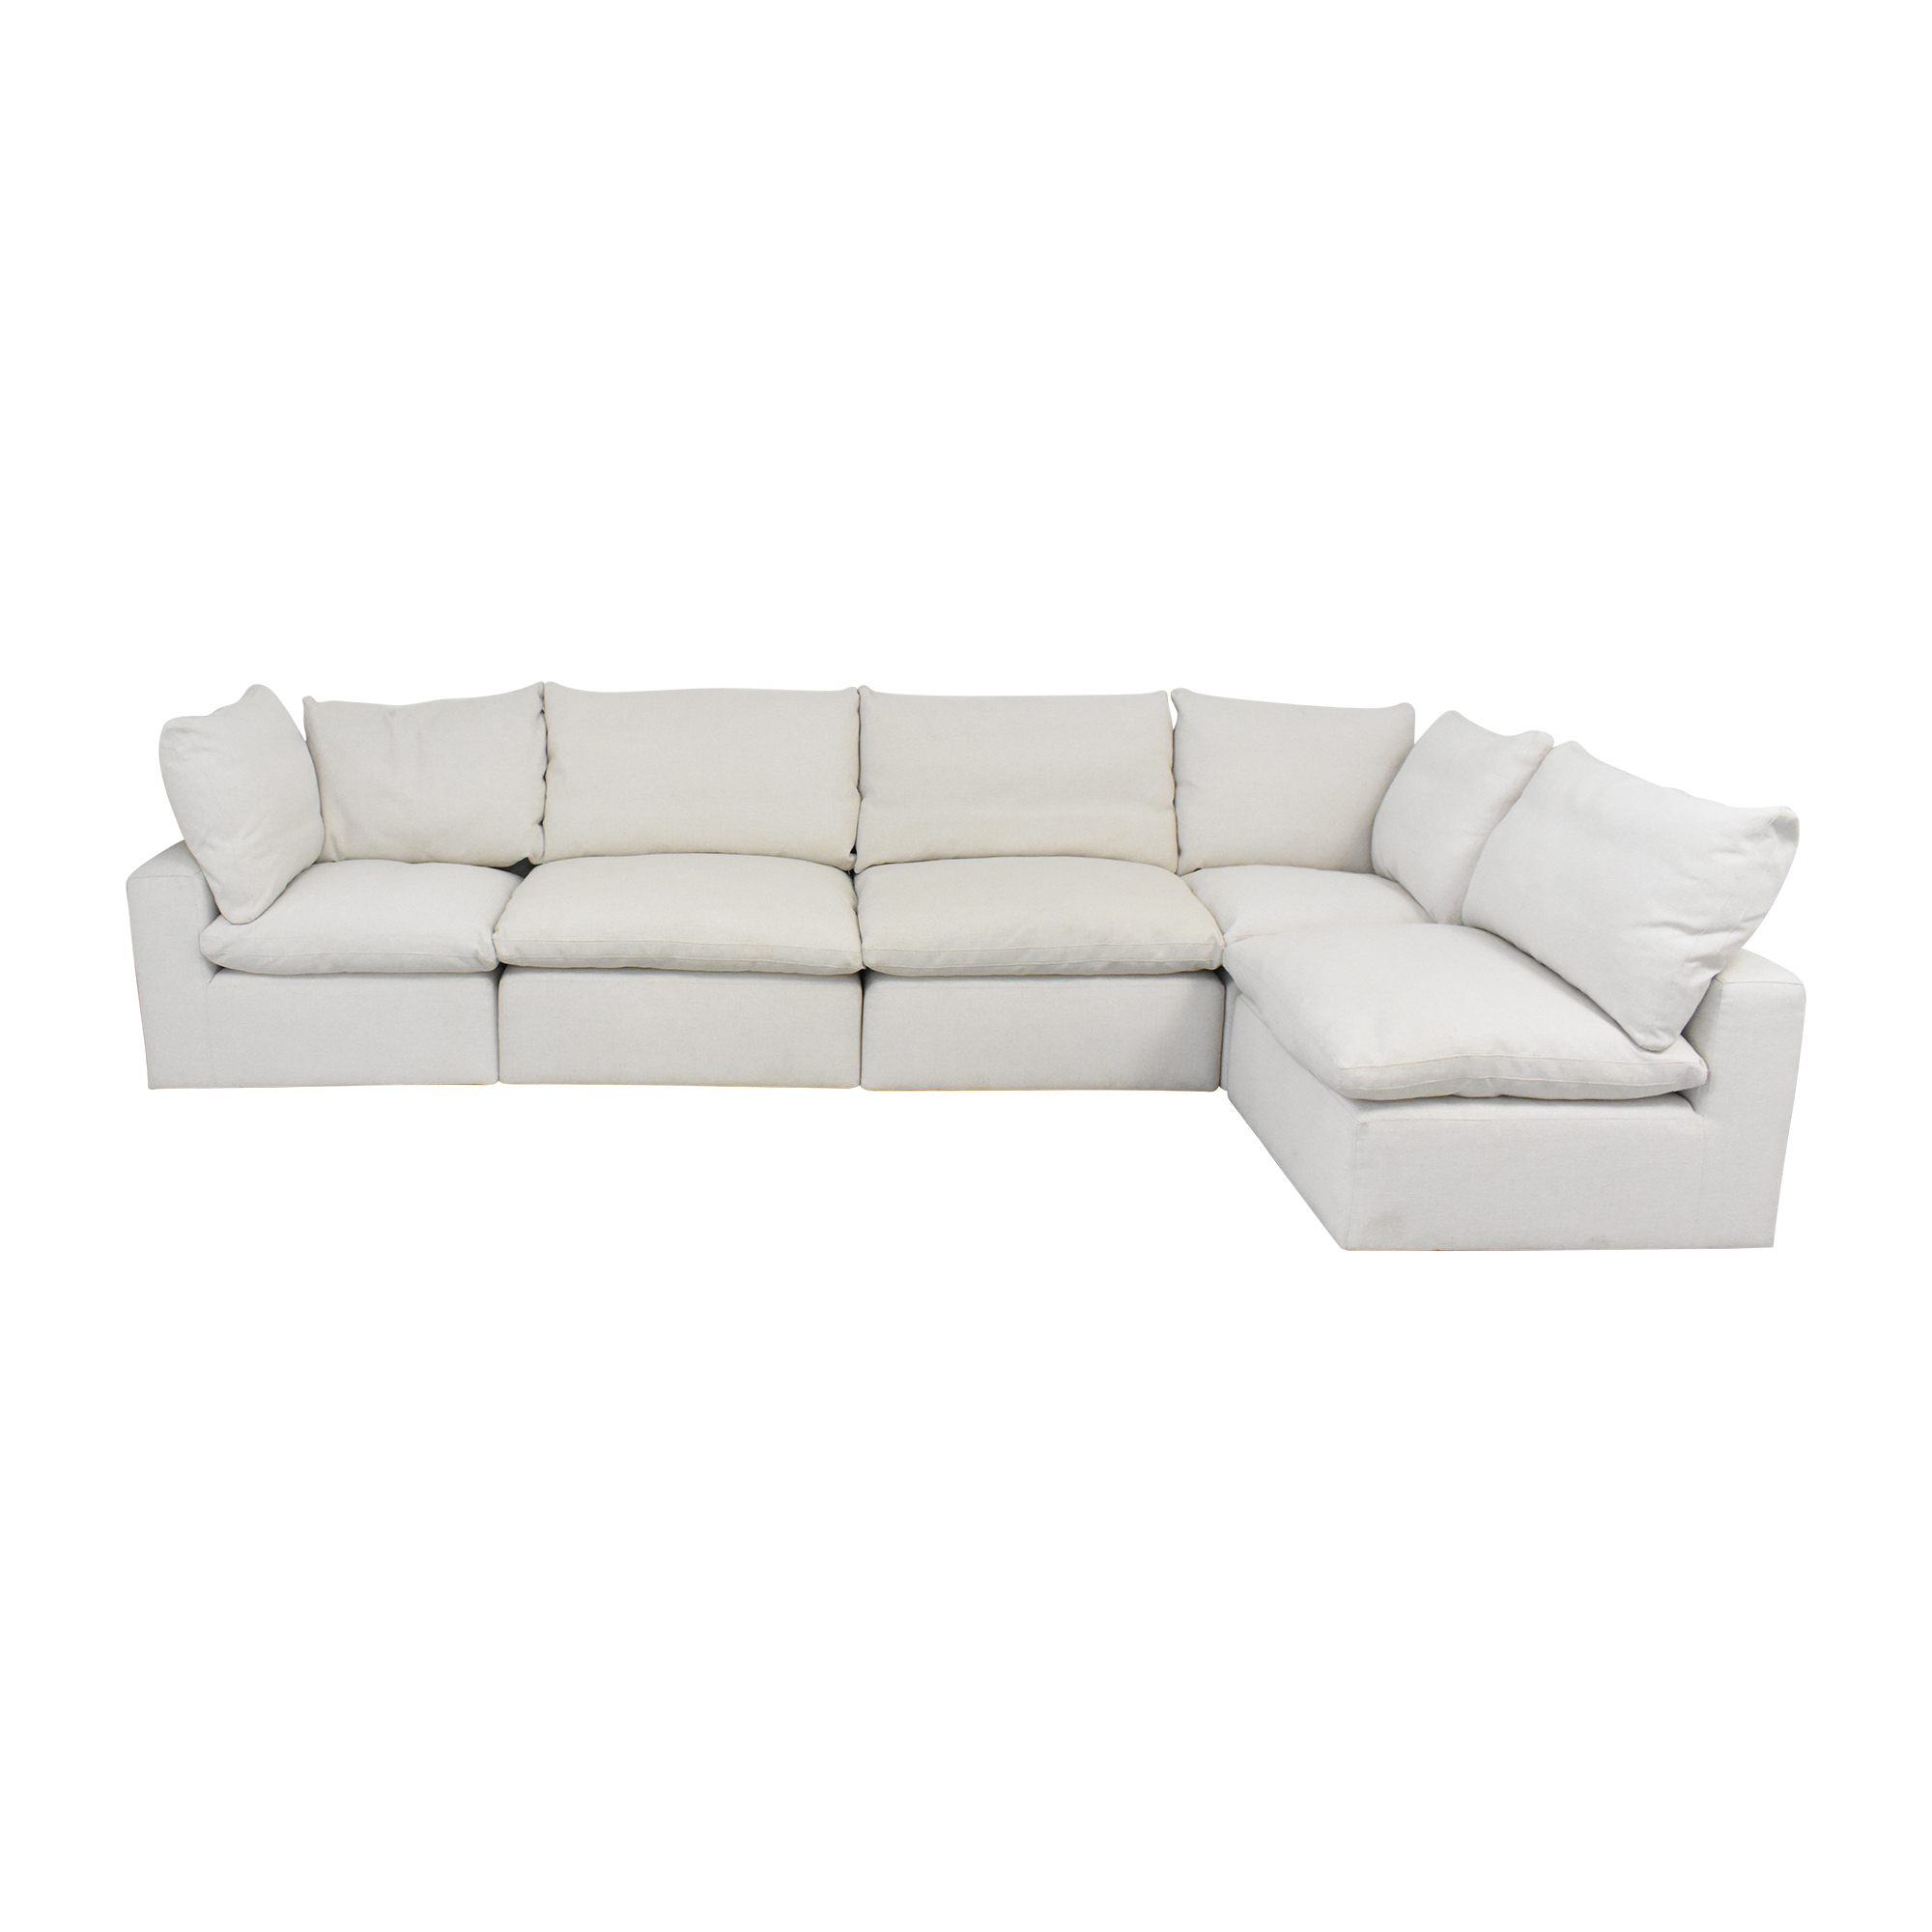 Bassett Furniture Bassett Furniture Corner Modular Sofa discount